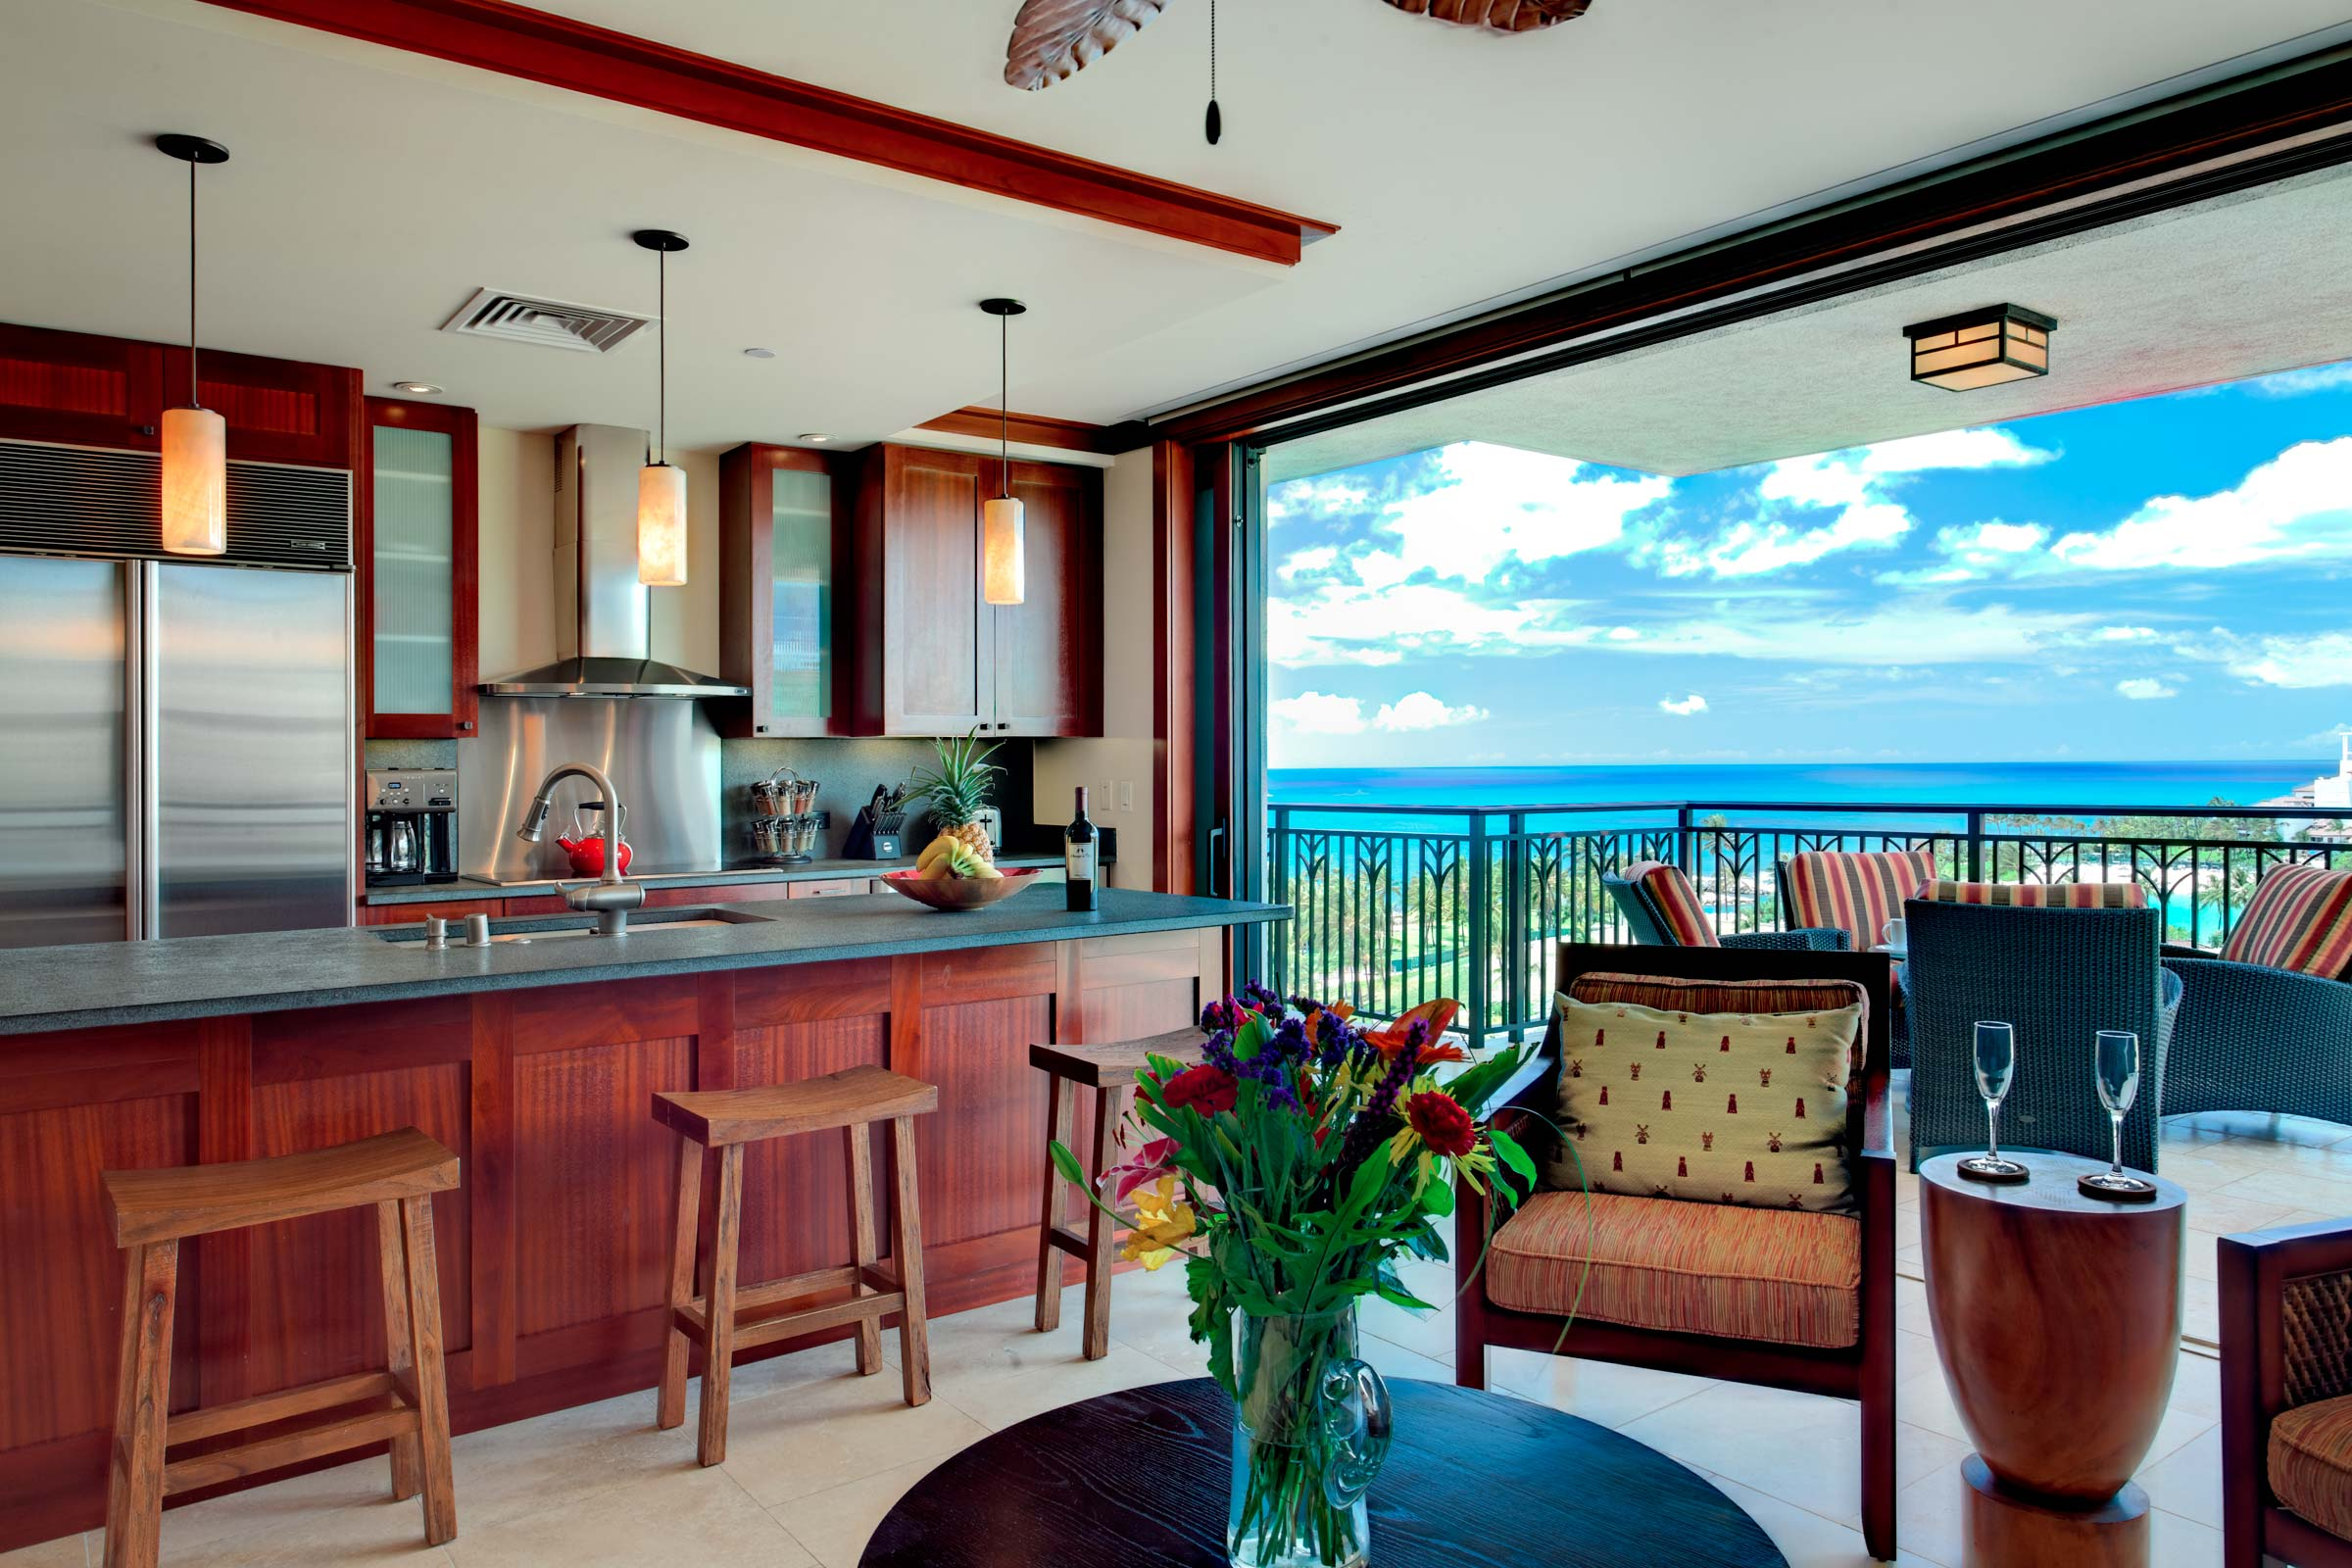 Old Key West Review 2 Bedroom as well Review The Villas At Disneys Wilderness Lodge 2 together with Home Plan 11522 also Aulani Disney Vacation Club Villas besides Old Key West. on two bedroom villa old key west